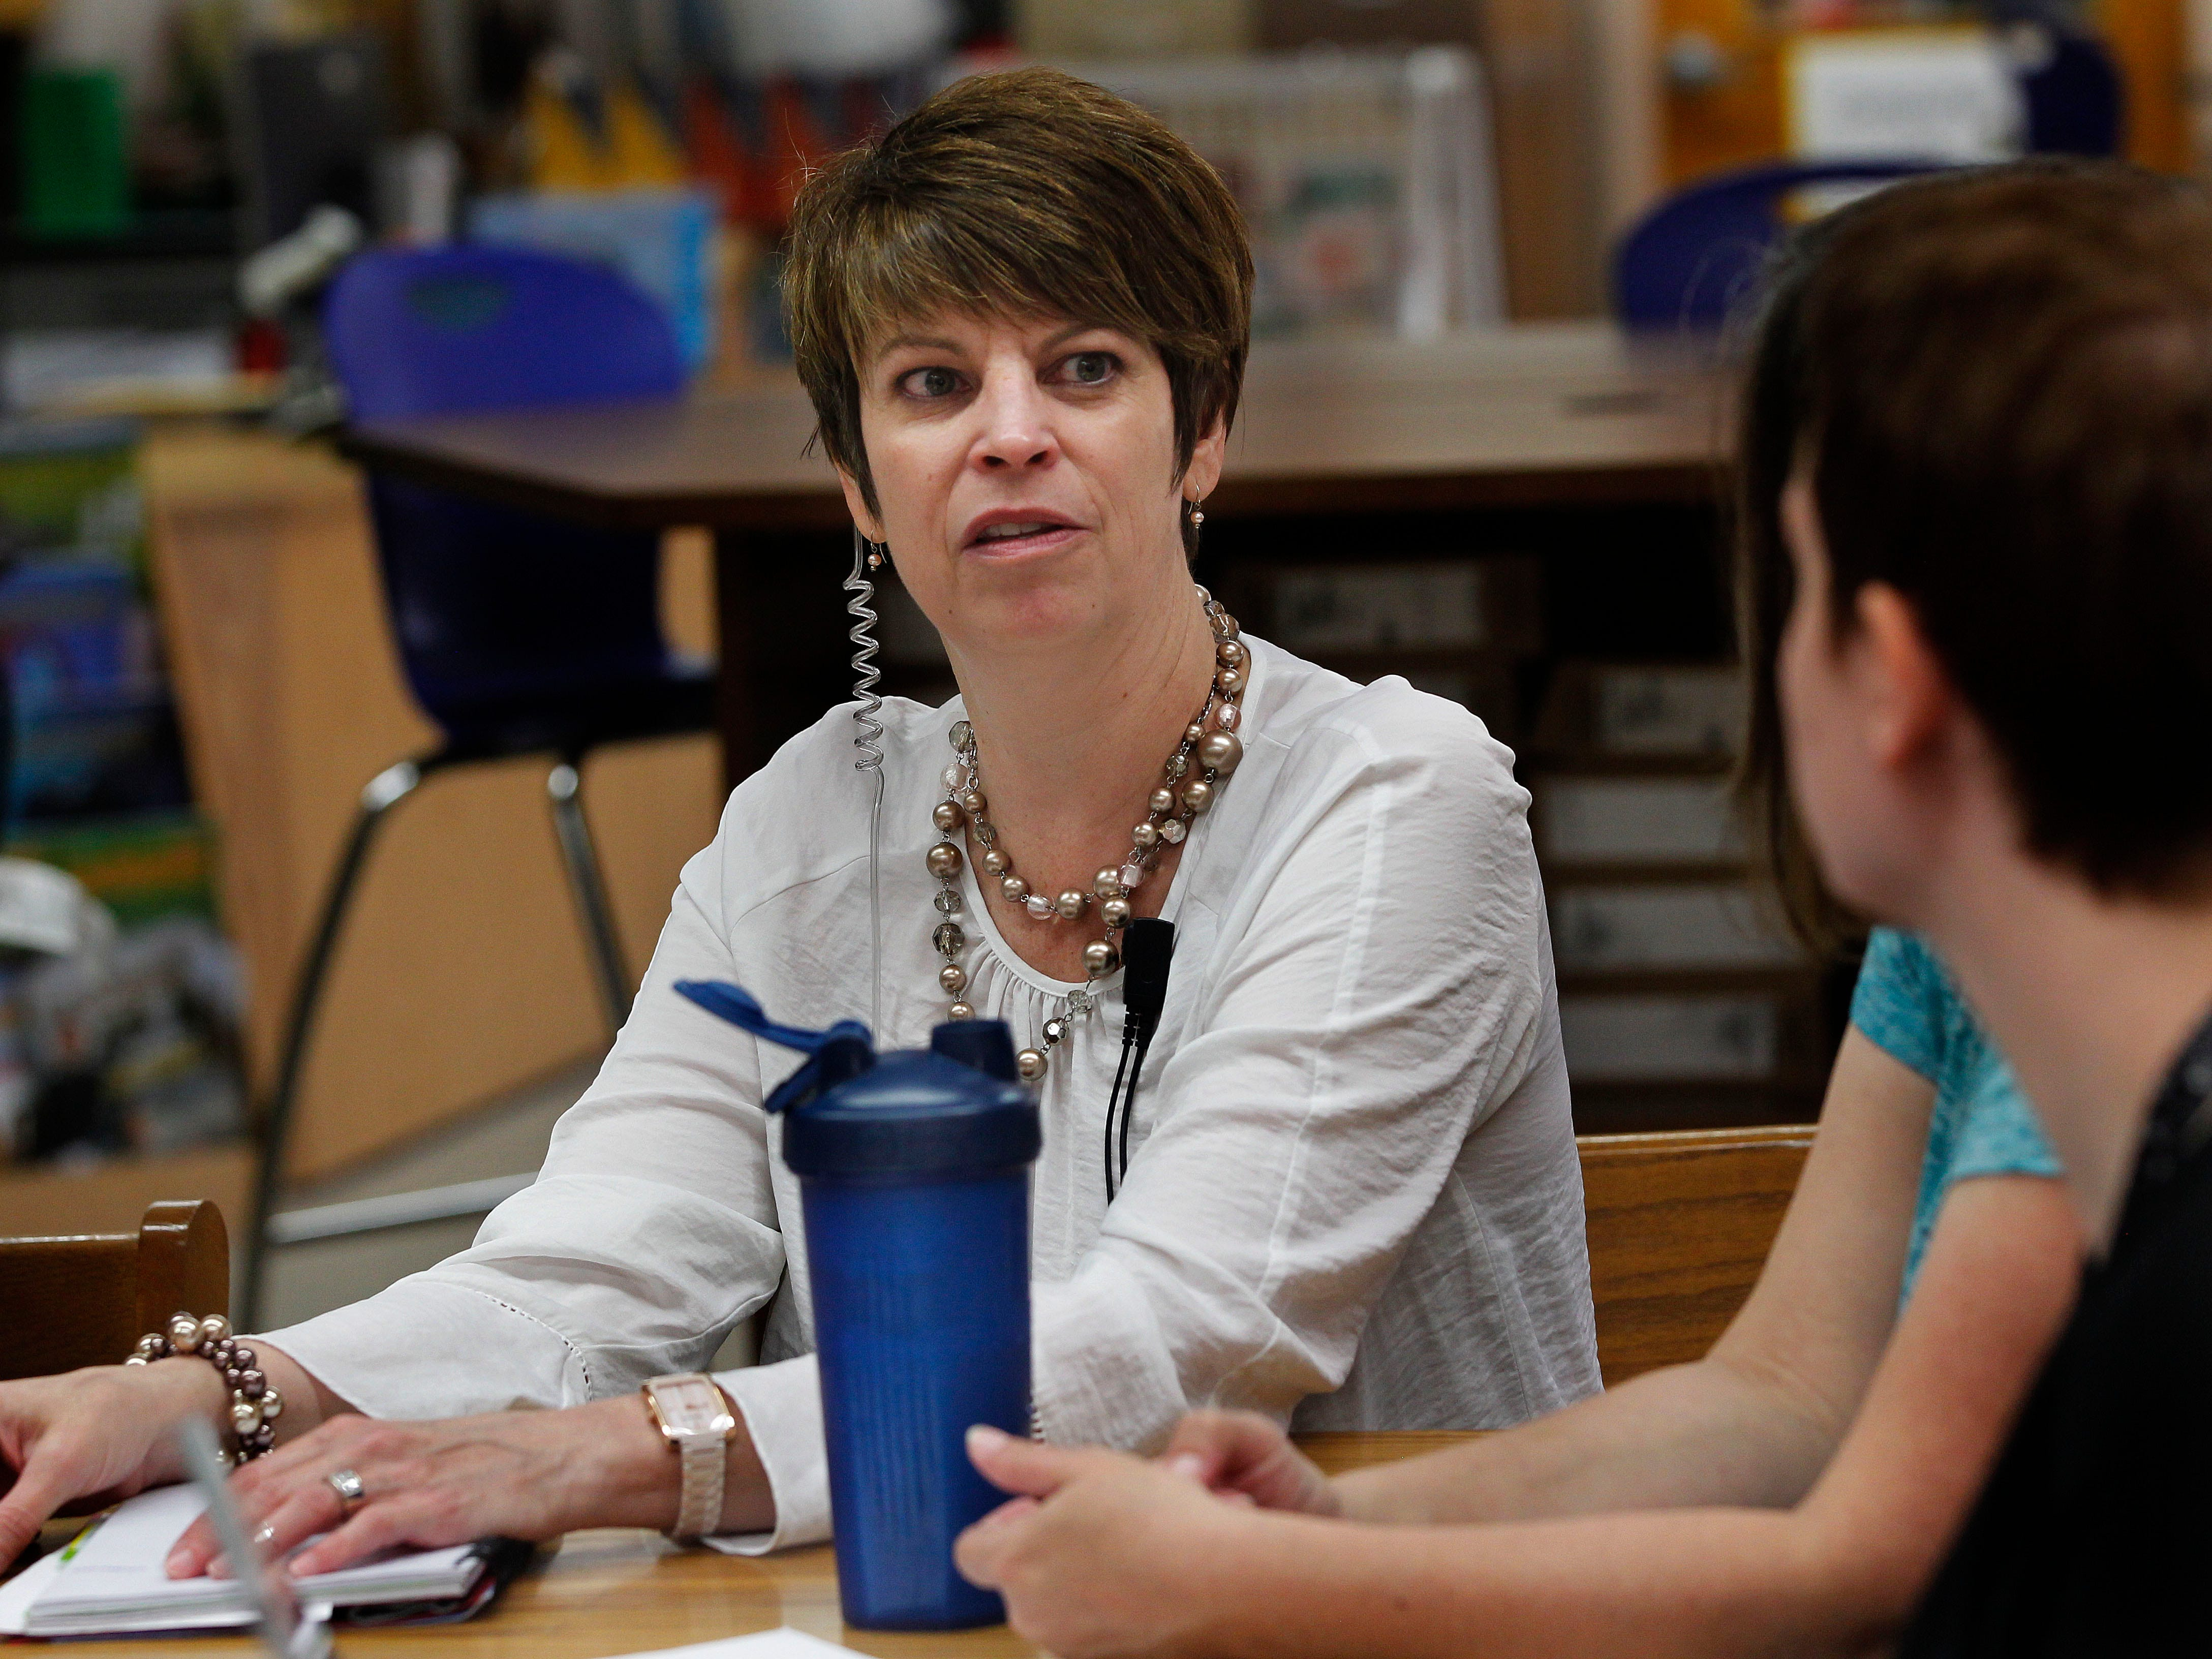 Kristin Hinds, principal at Carver Academy, (left) discusses student progress May 16 during a partners meeting.